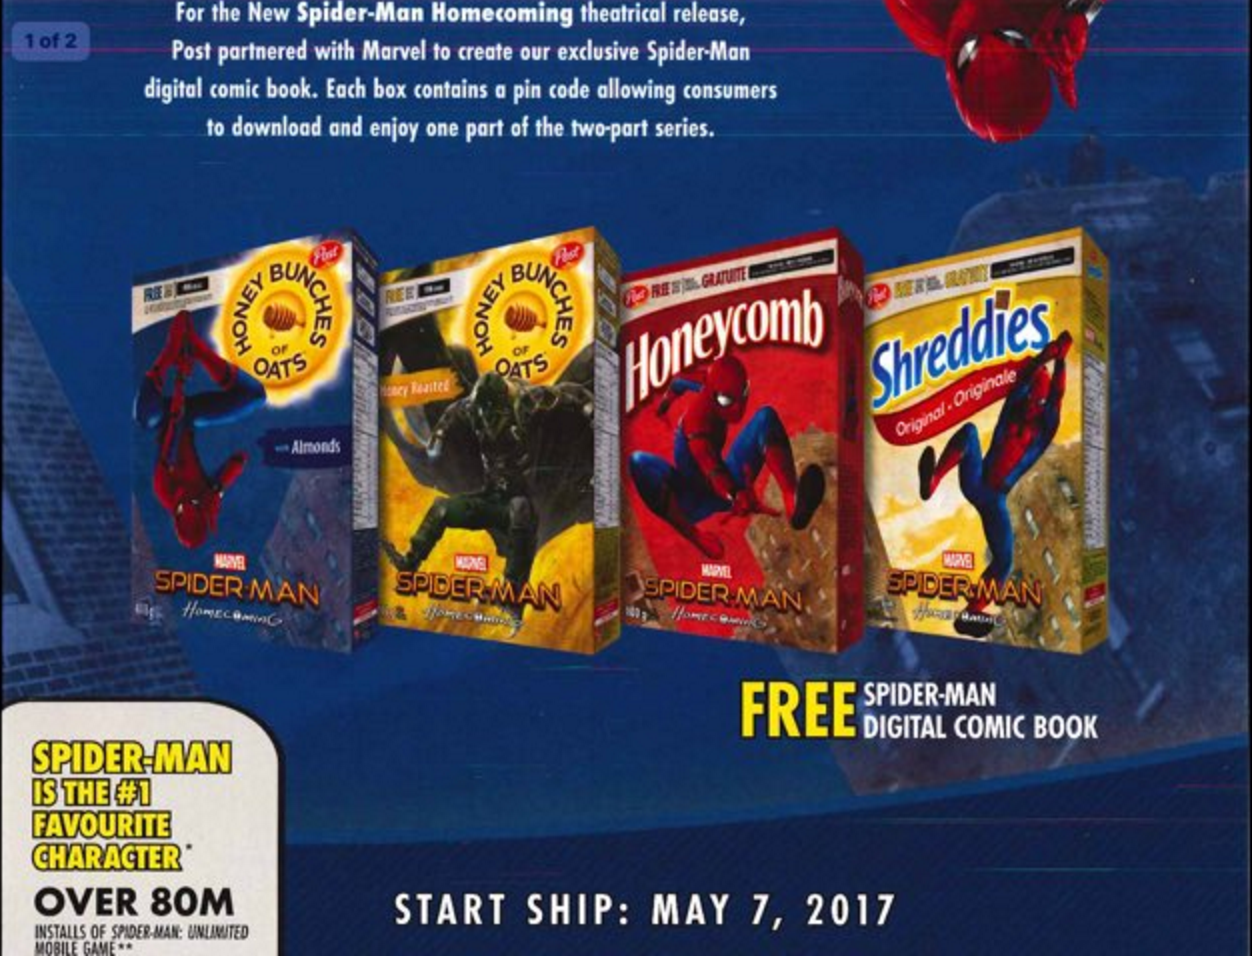 Reshoots On Spider-Man: Homecoming Are Now Underway As Fresh Batch Of Promo Pics Emerge